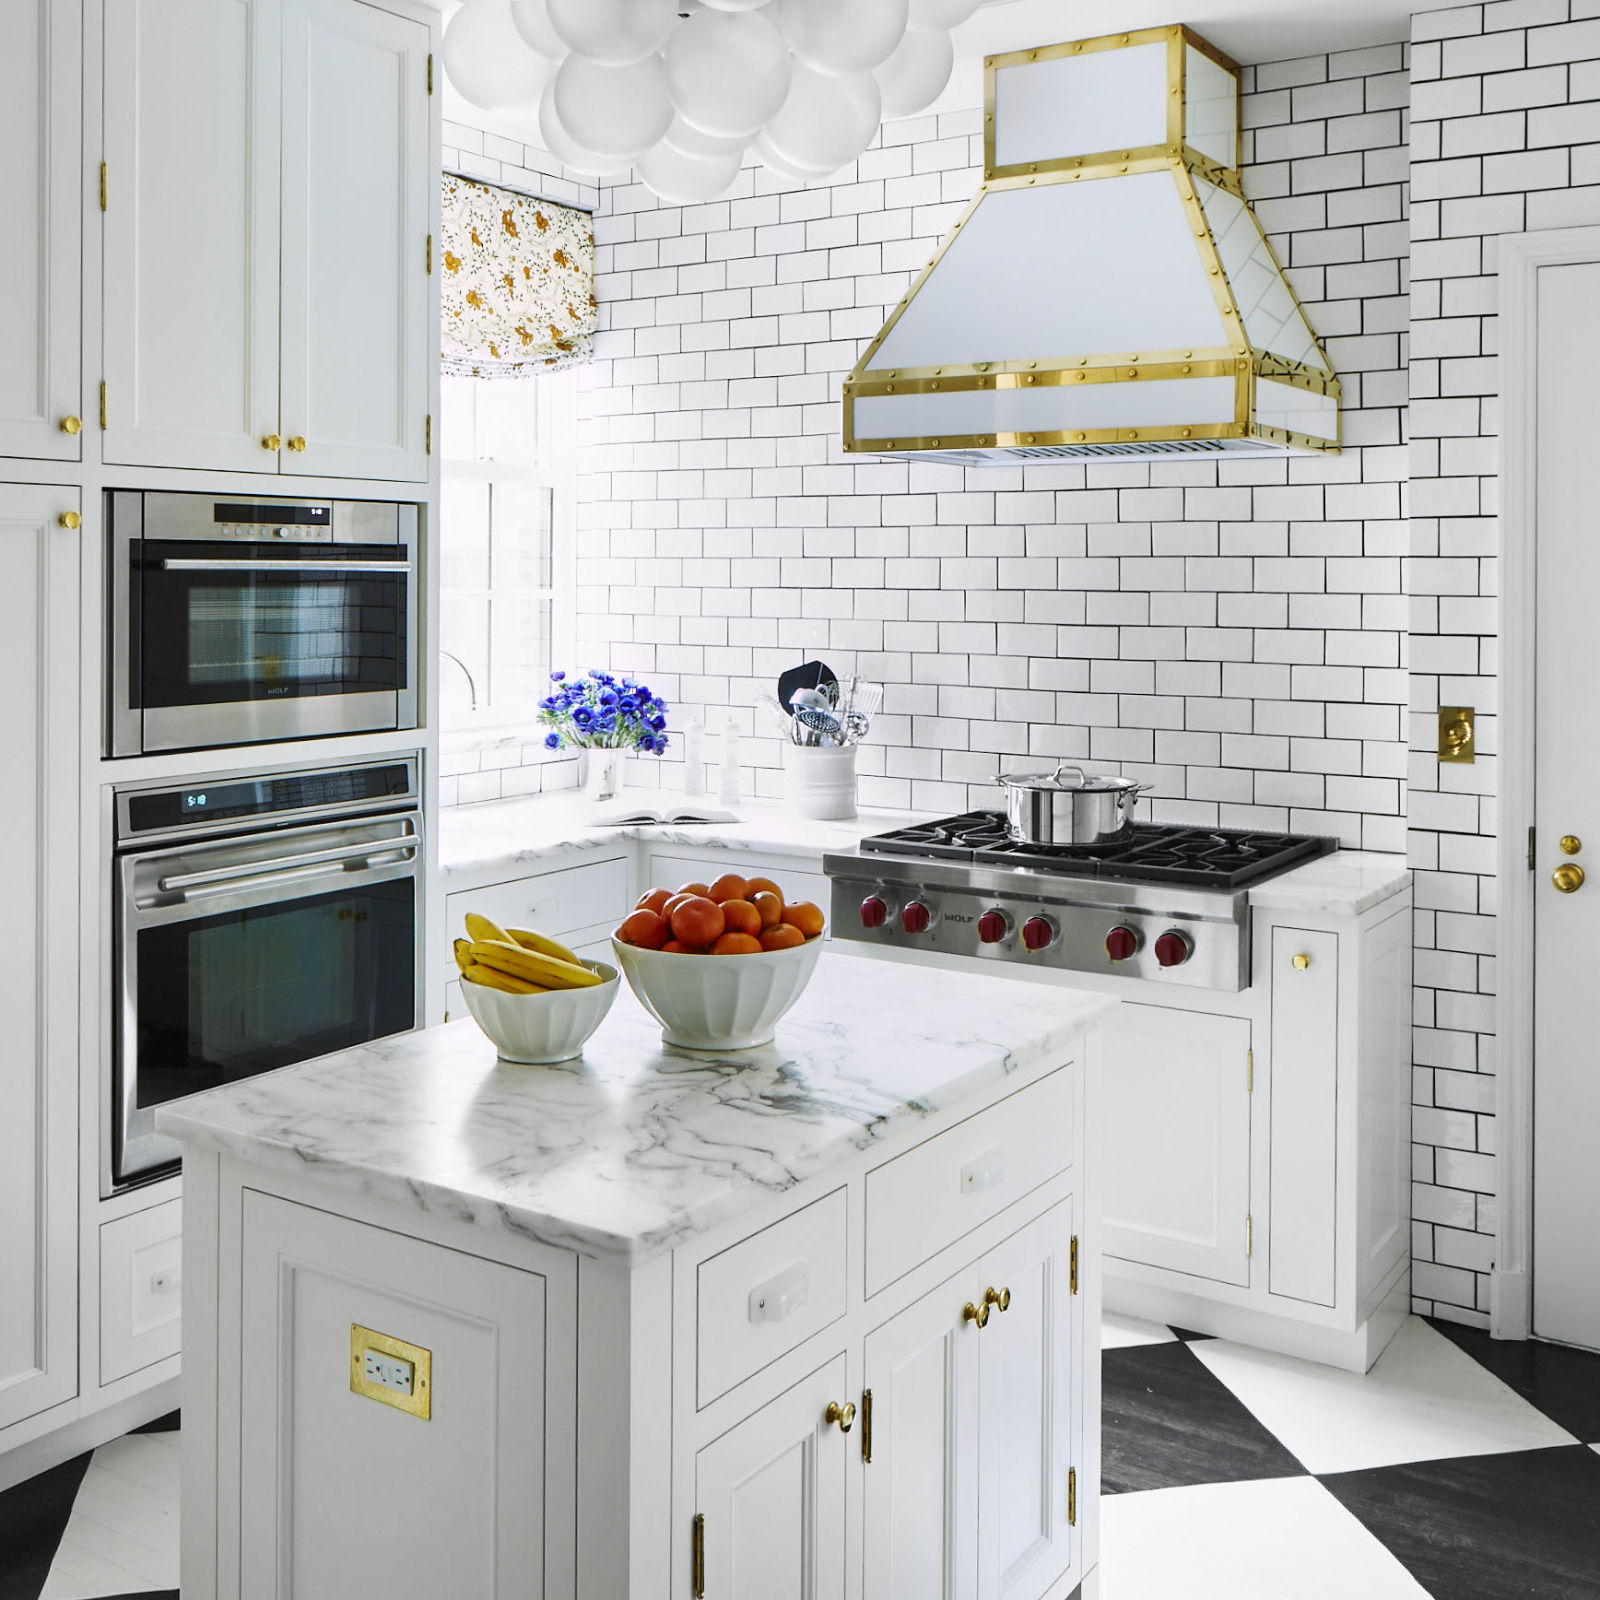 Pictures Of White Kitchens: Dream Big: Stylish Designs For Small Kitchens